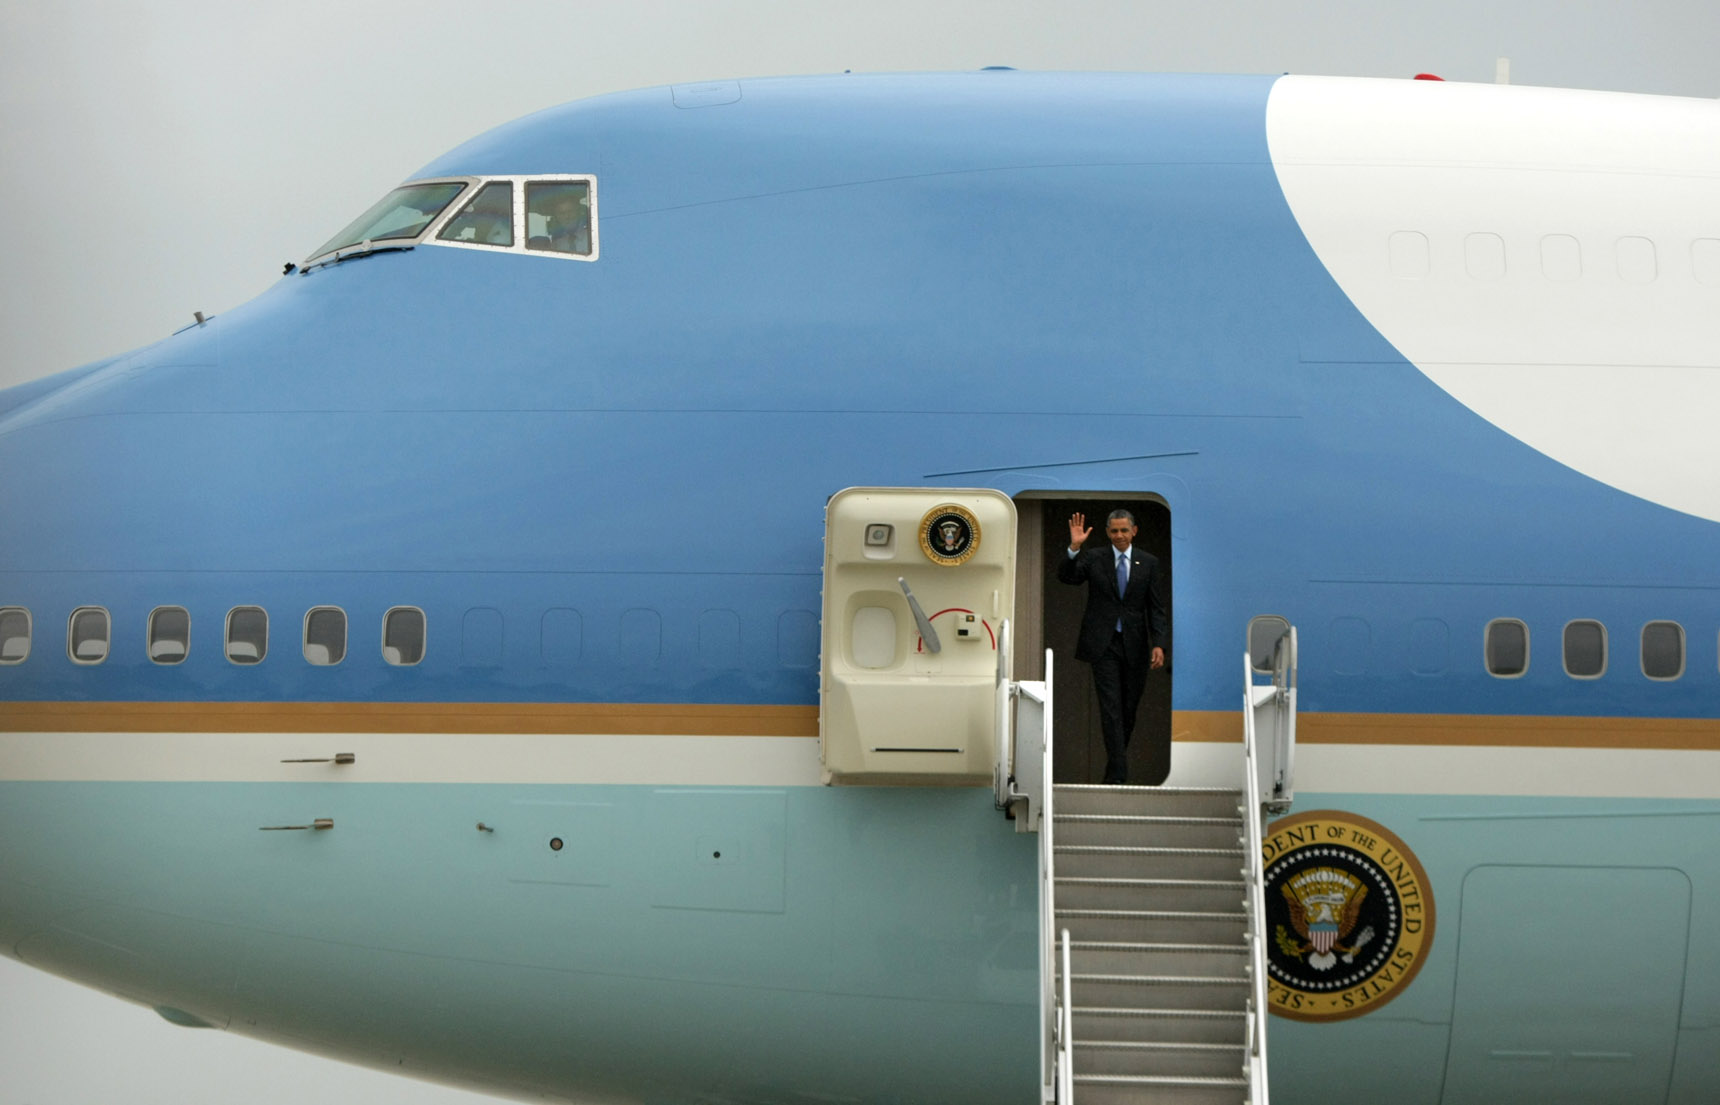 Air Force One lands at McGuire Air Force Base